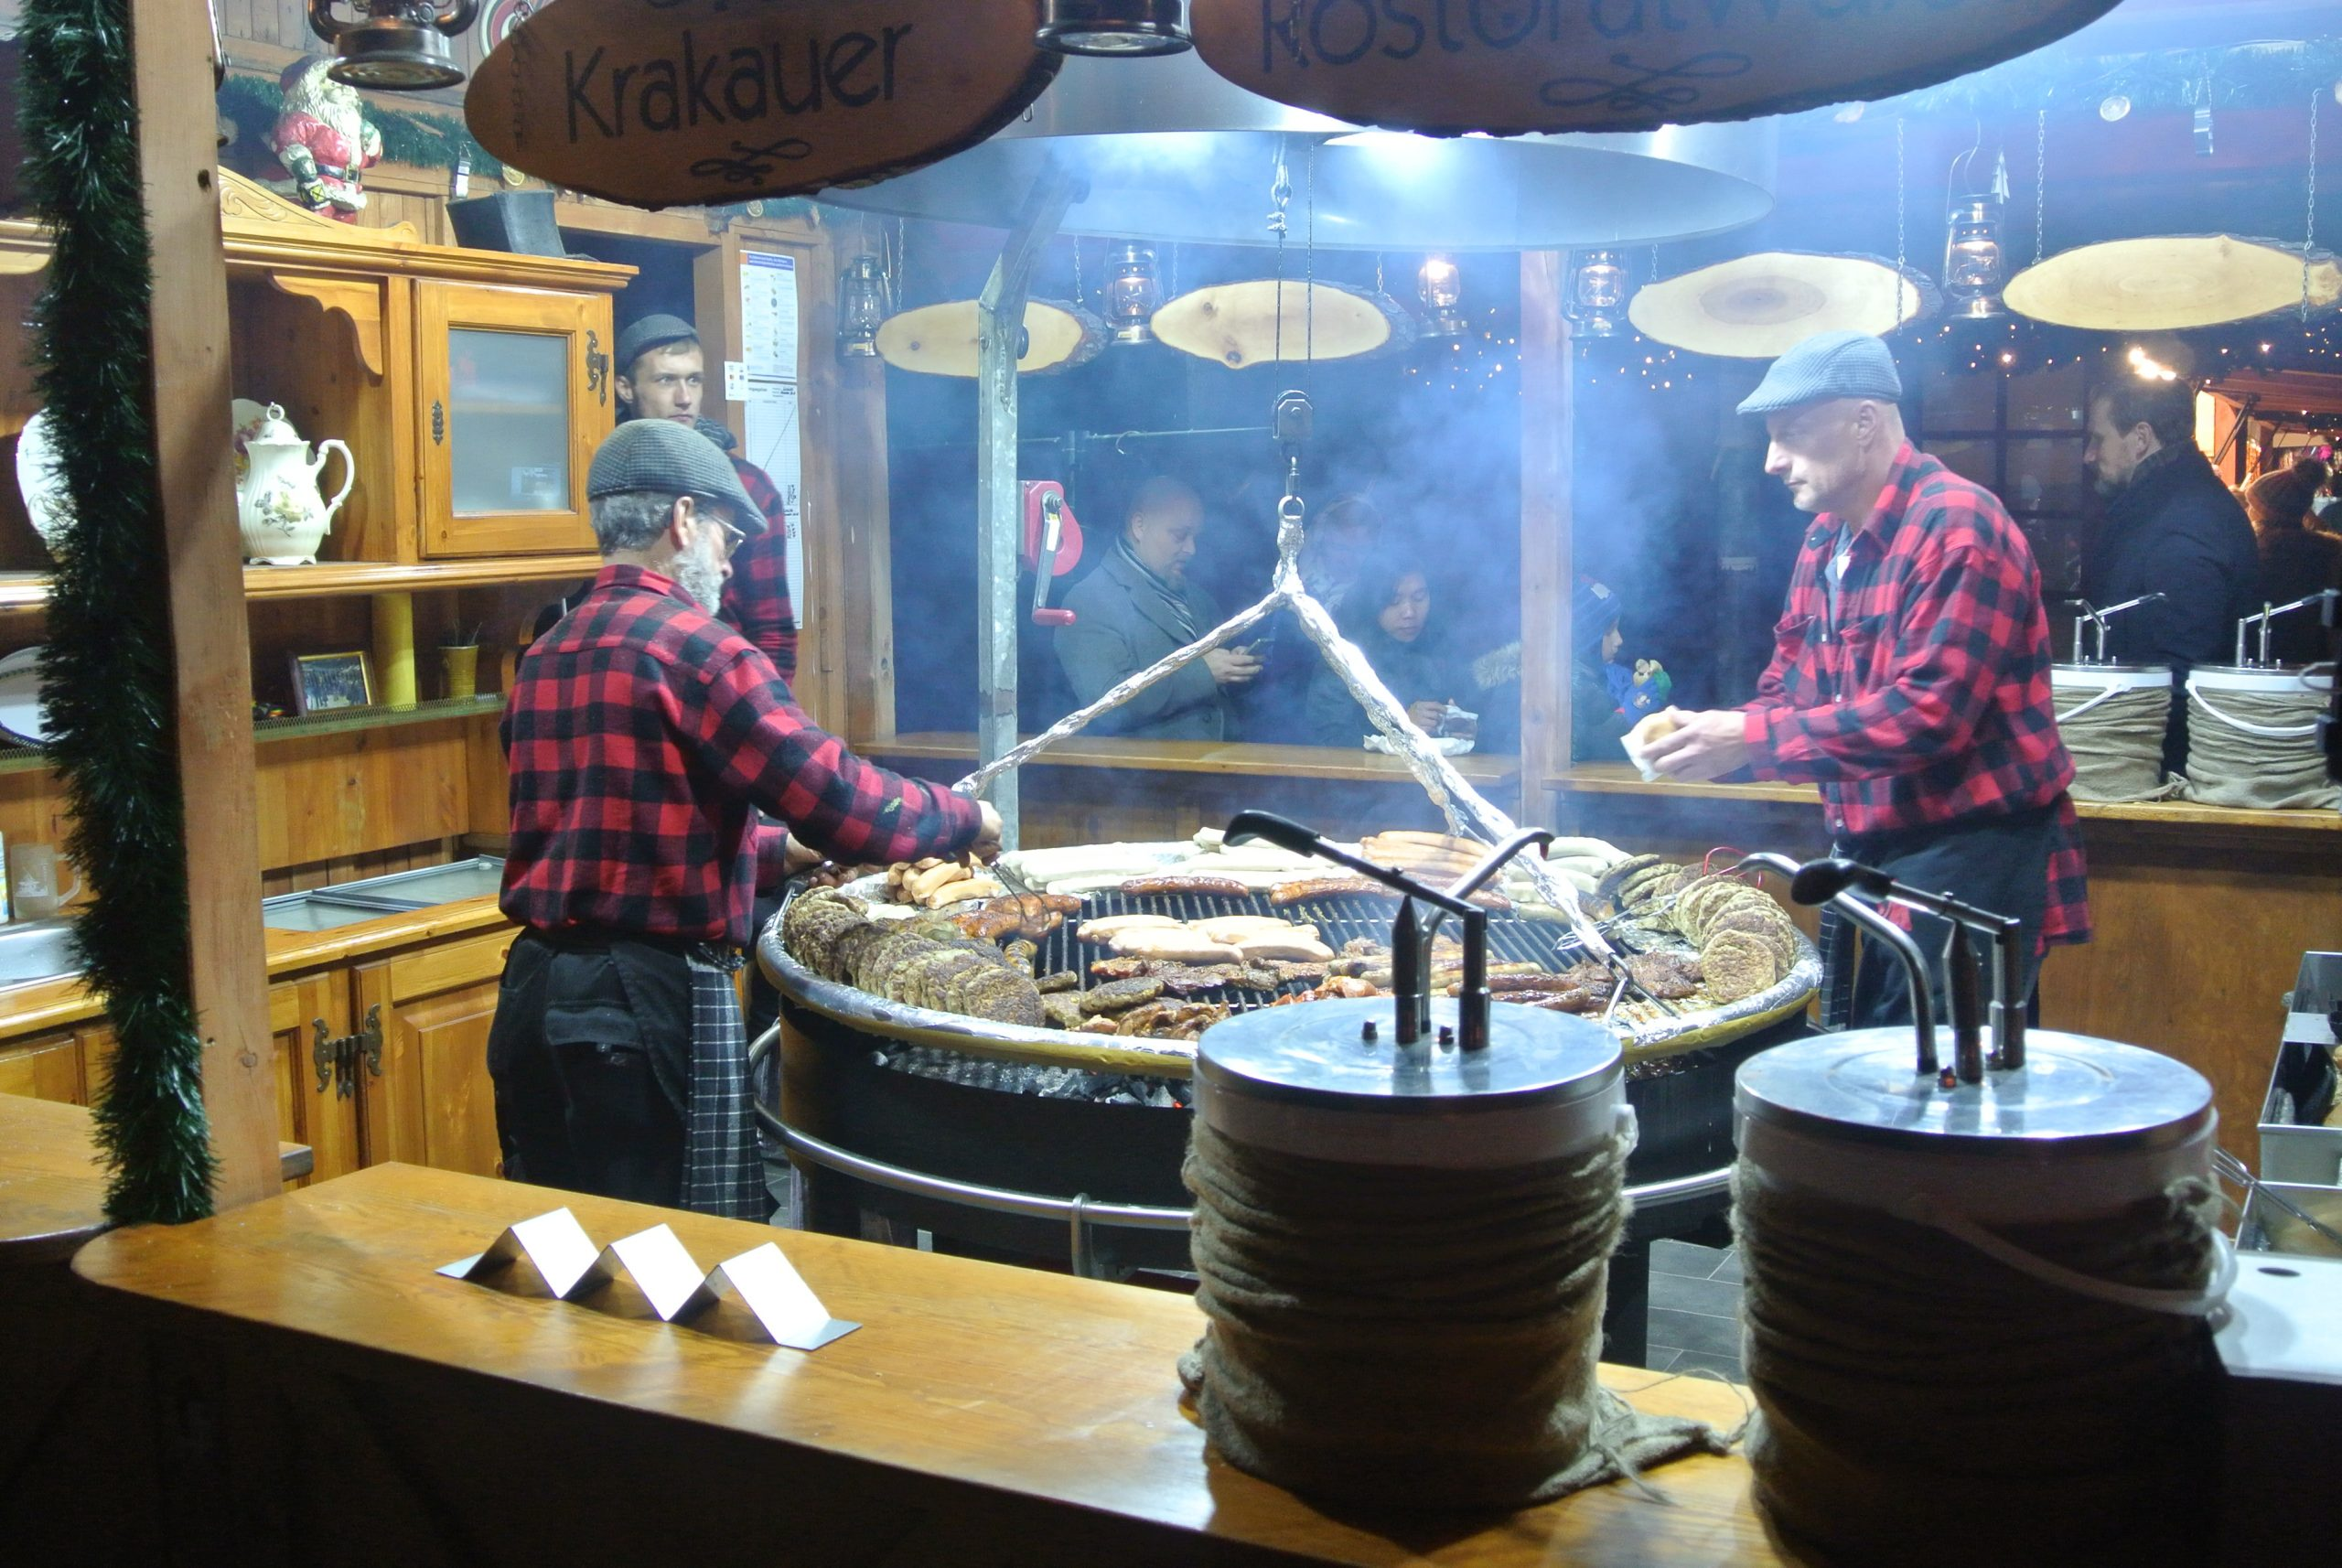 Cooking sausages at a German Christmas Market - photo by Juliamaud